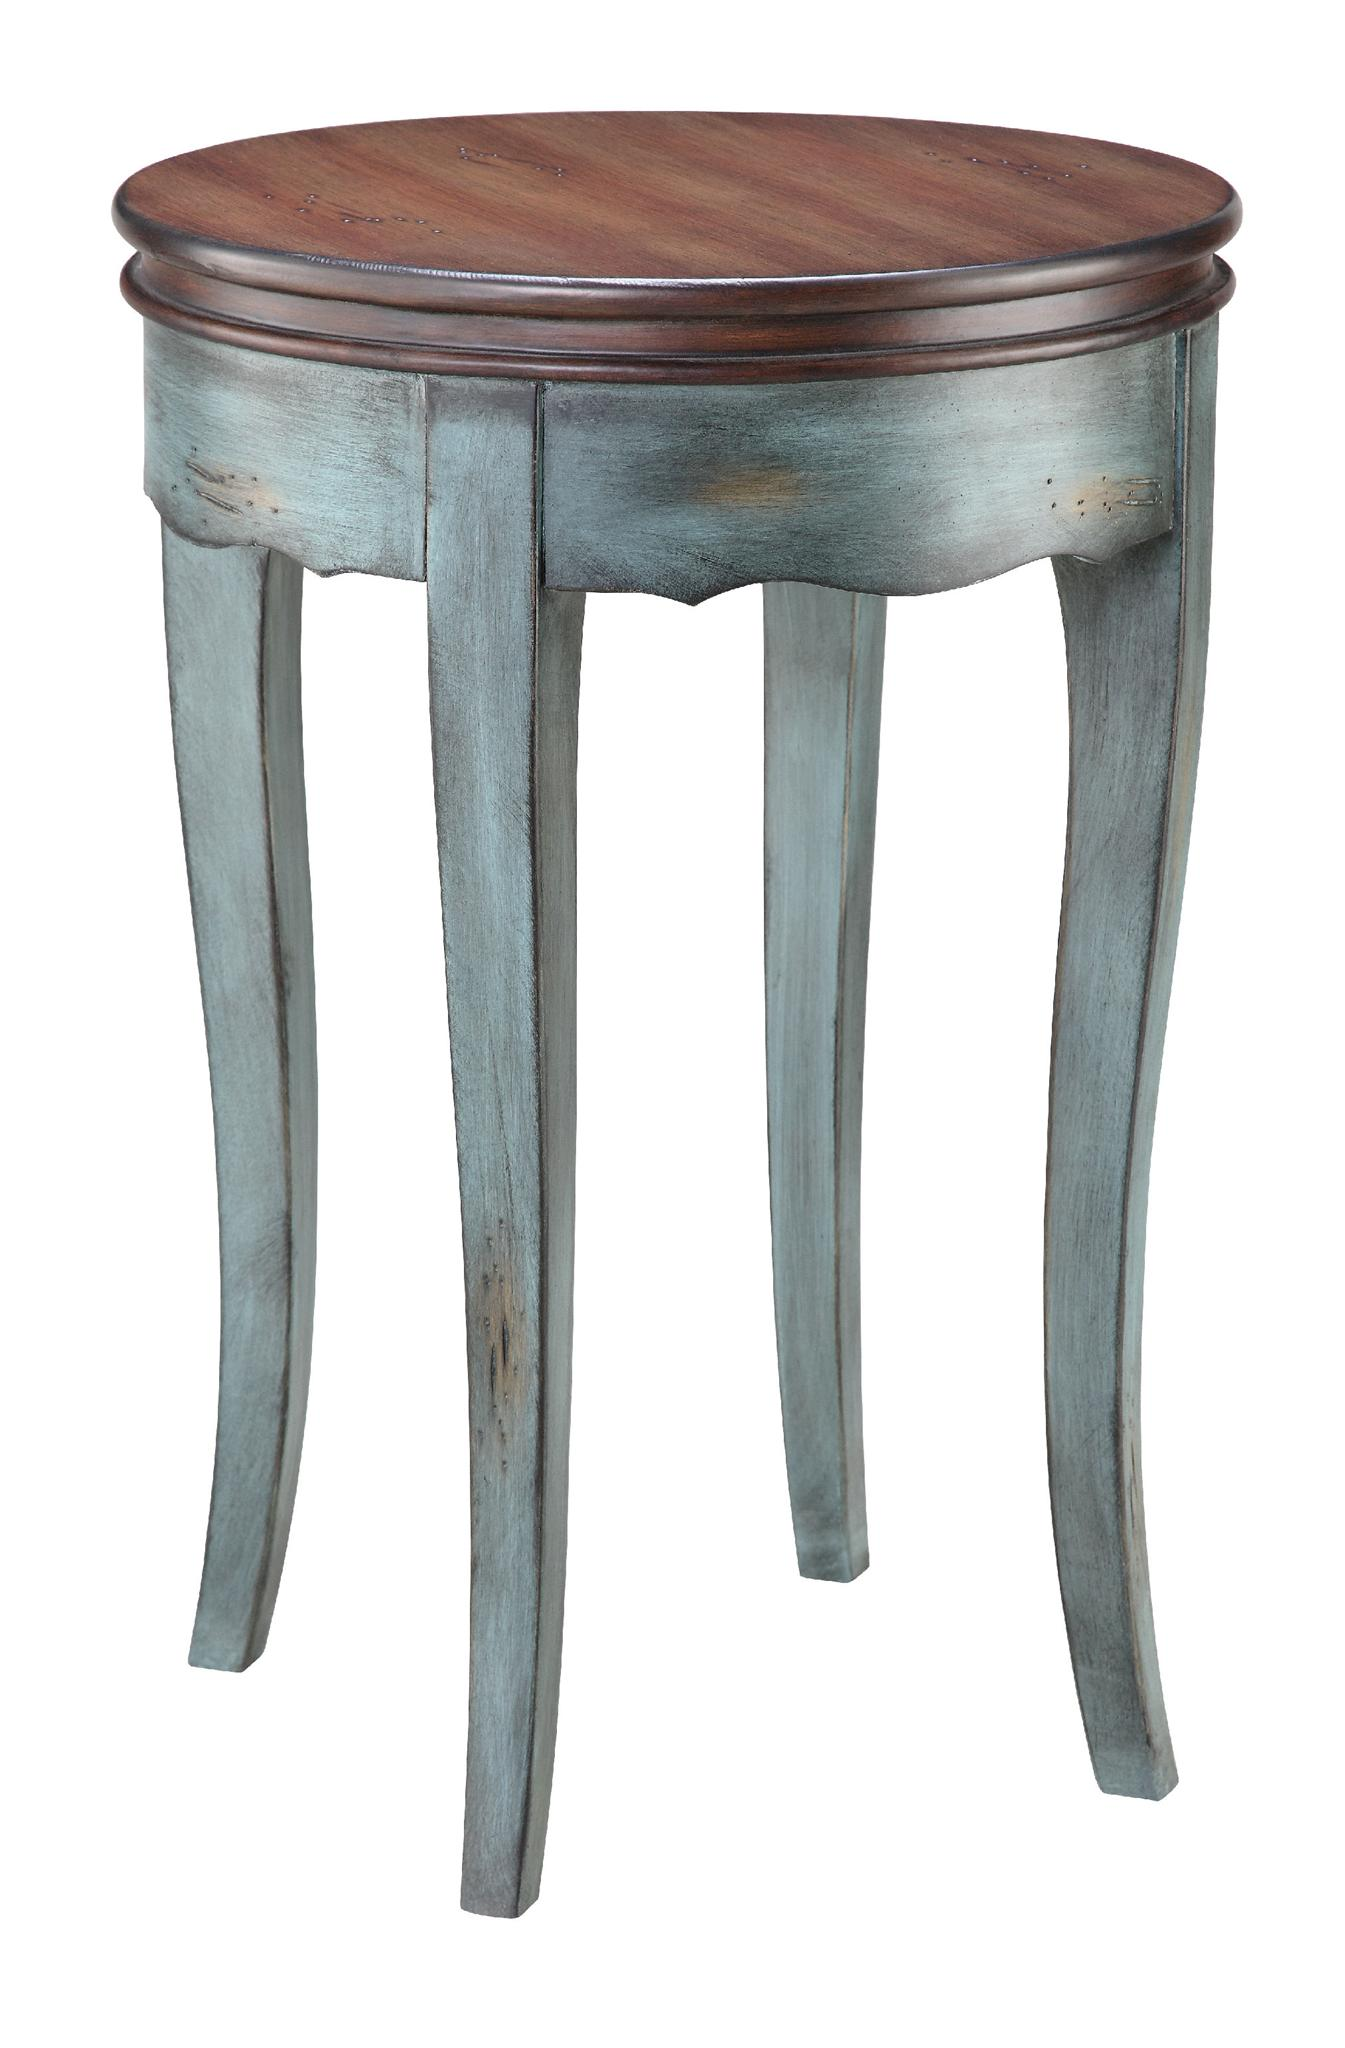 delightful unique small accent tables outdoor storage glass for kijiji round modern and ott antique threshold cabinet furniture tall target benc gold decorative living table room